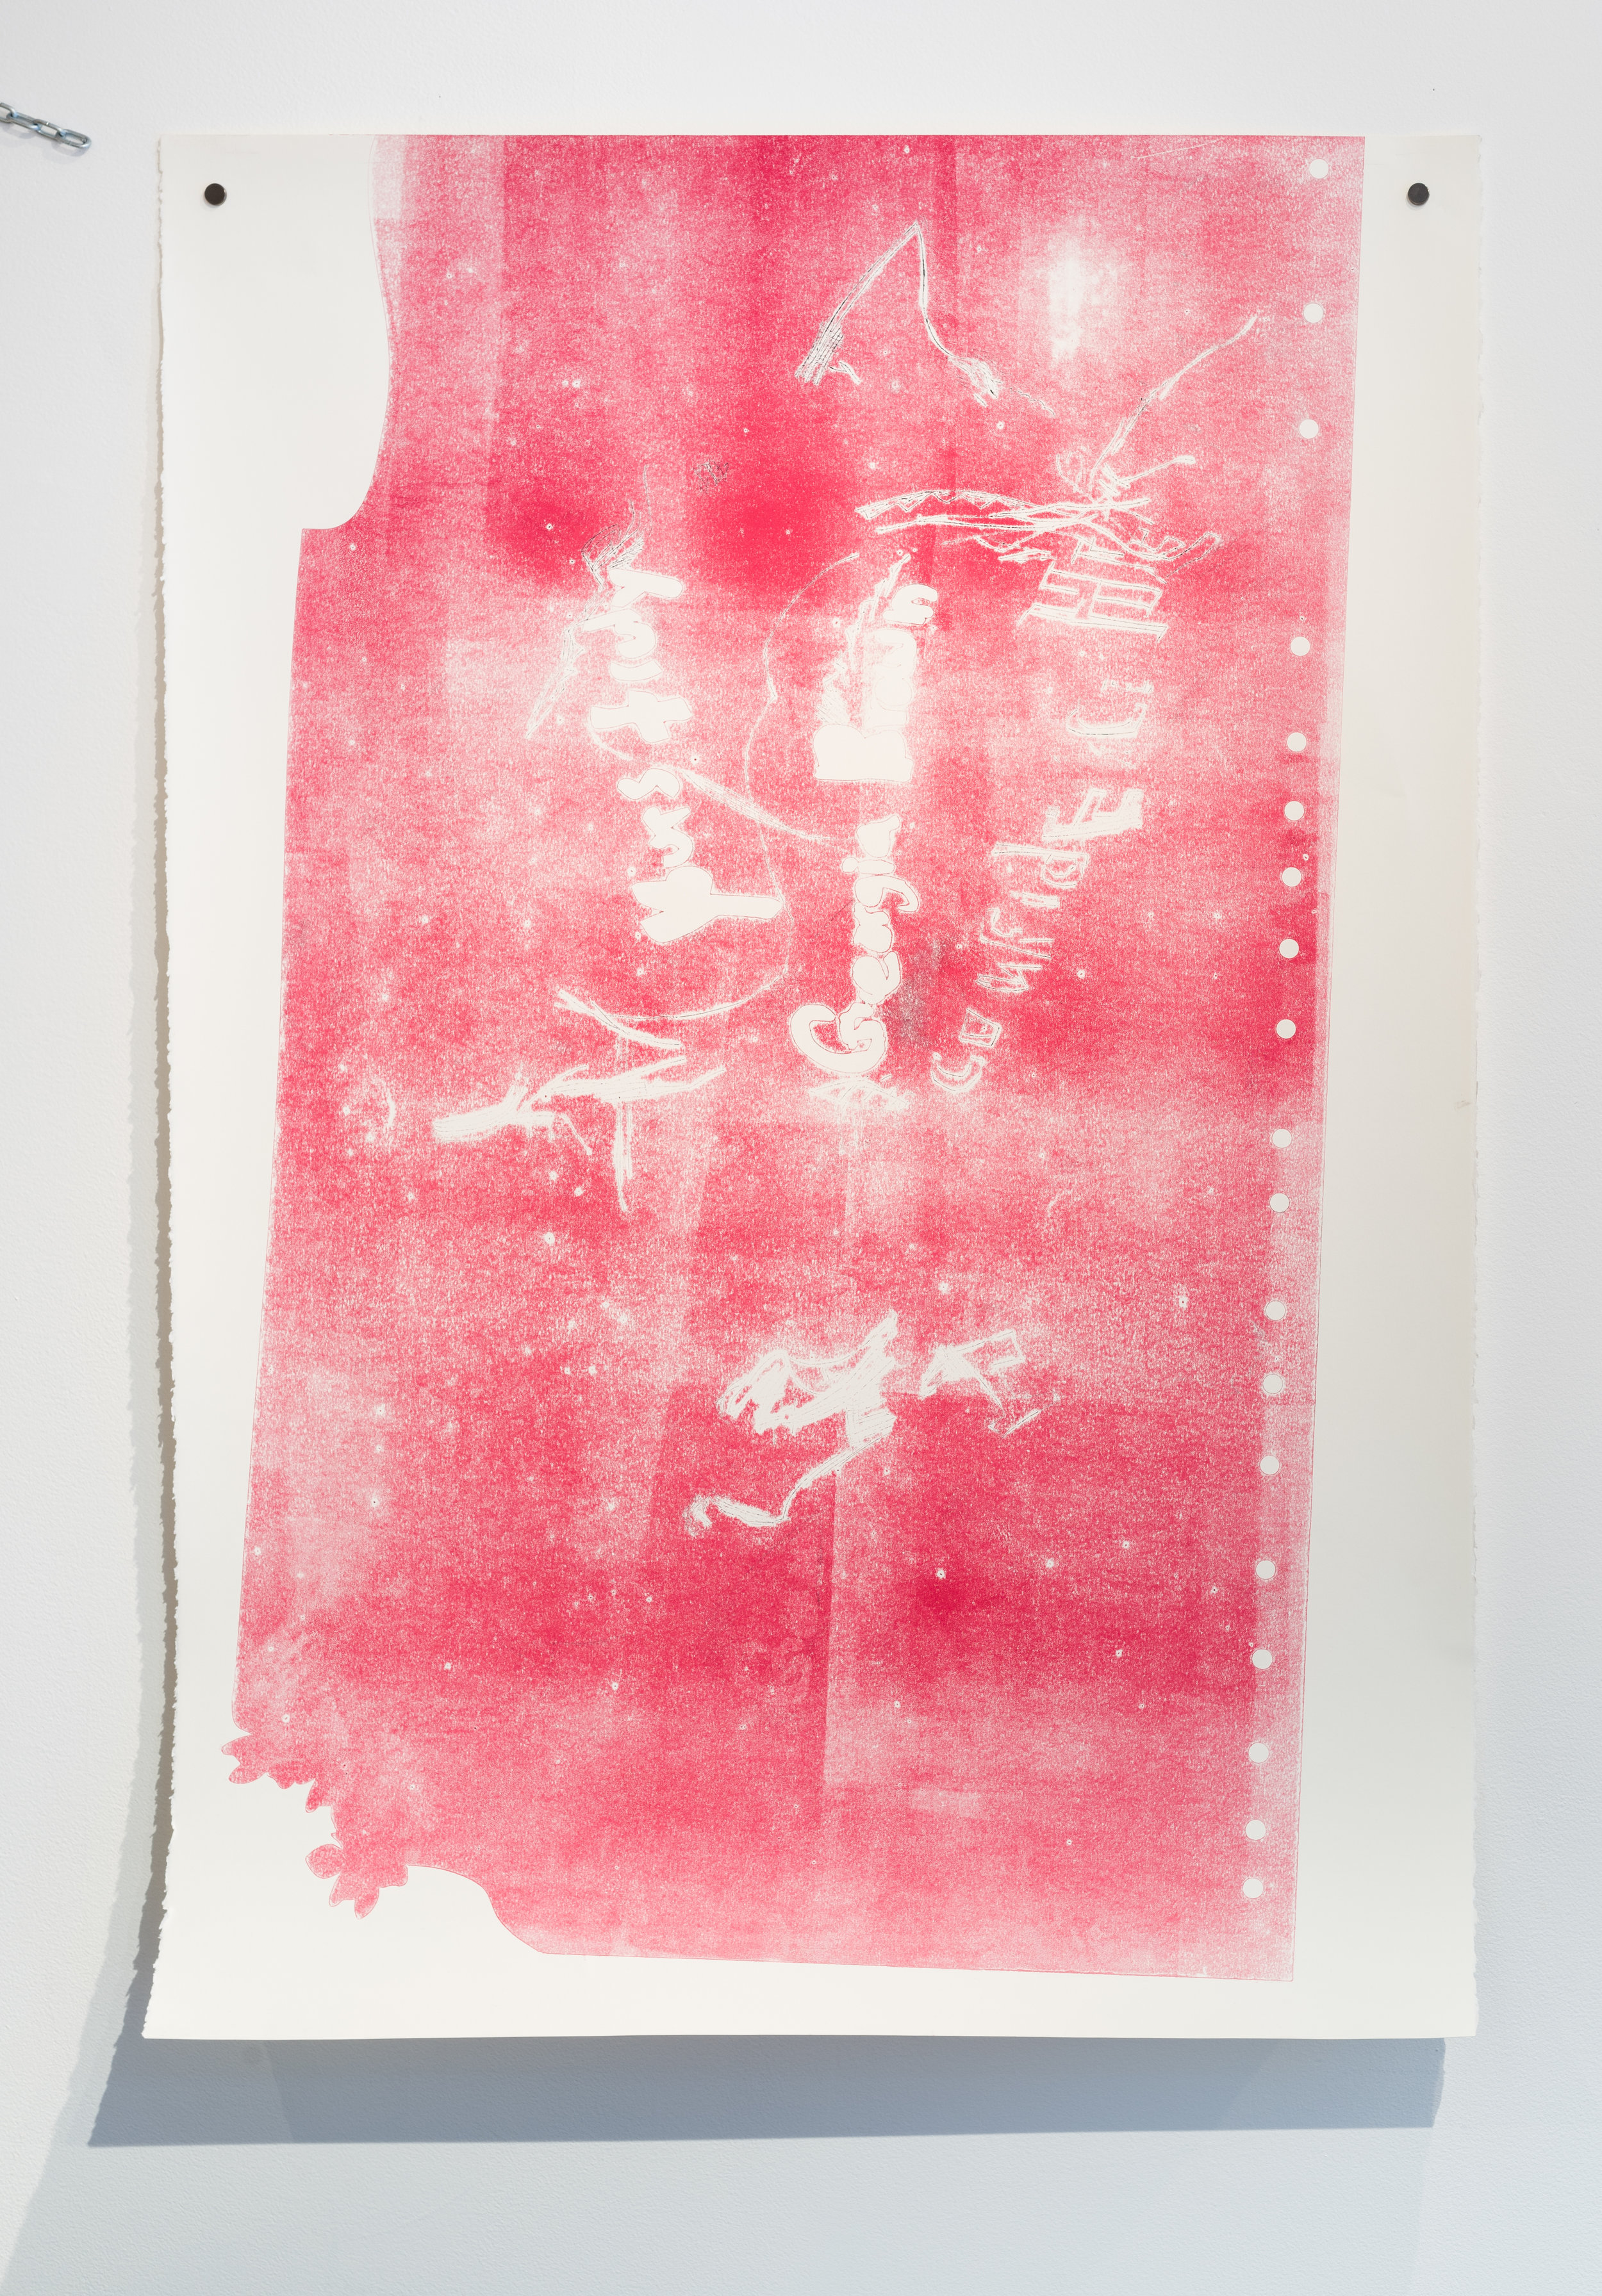 con•fi•dence 2,  2017  Monoprint on paper  44 x 30 1/2 in.